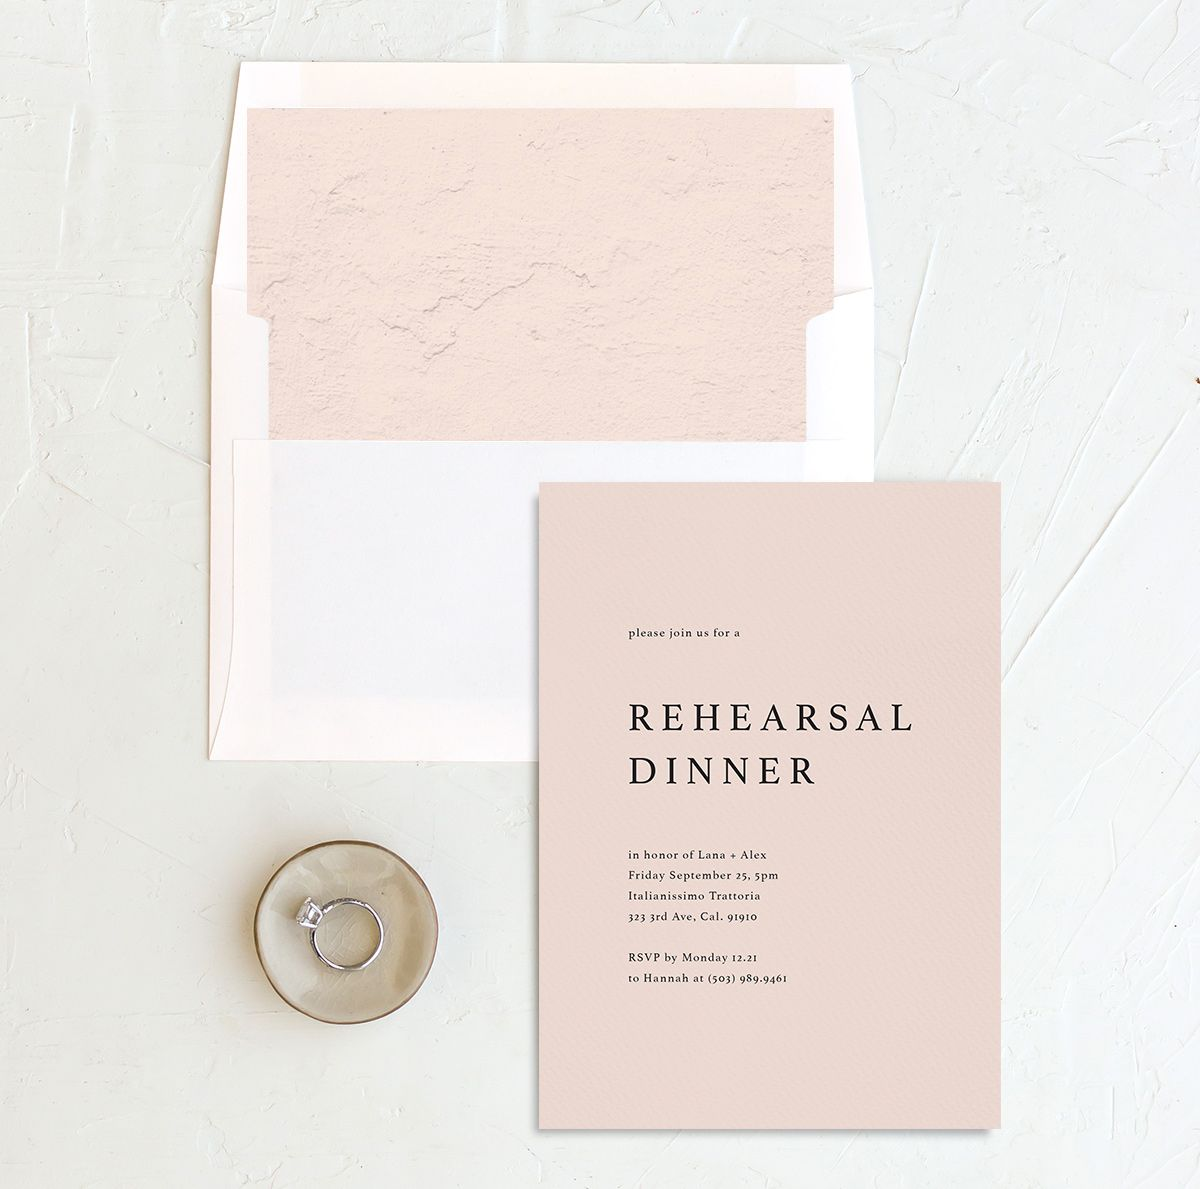 Natural Palette rehearsal dinner invitation with liner in pink